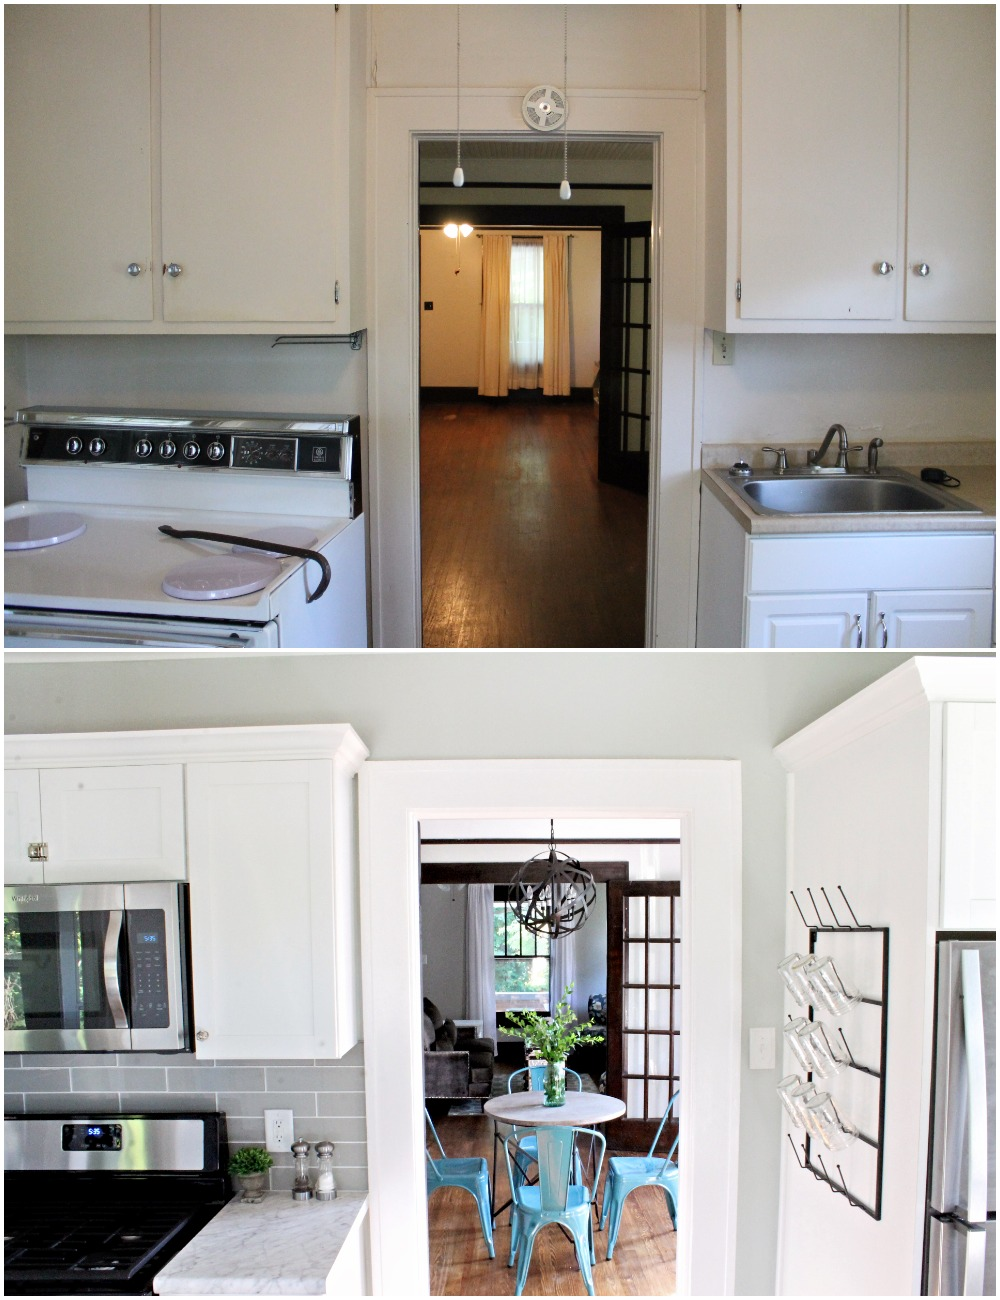 House Flipping Before and Afters - DIY BUDGET KITCHEN IDEAS WHITE SHAKER CABINETS (8).jpg